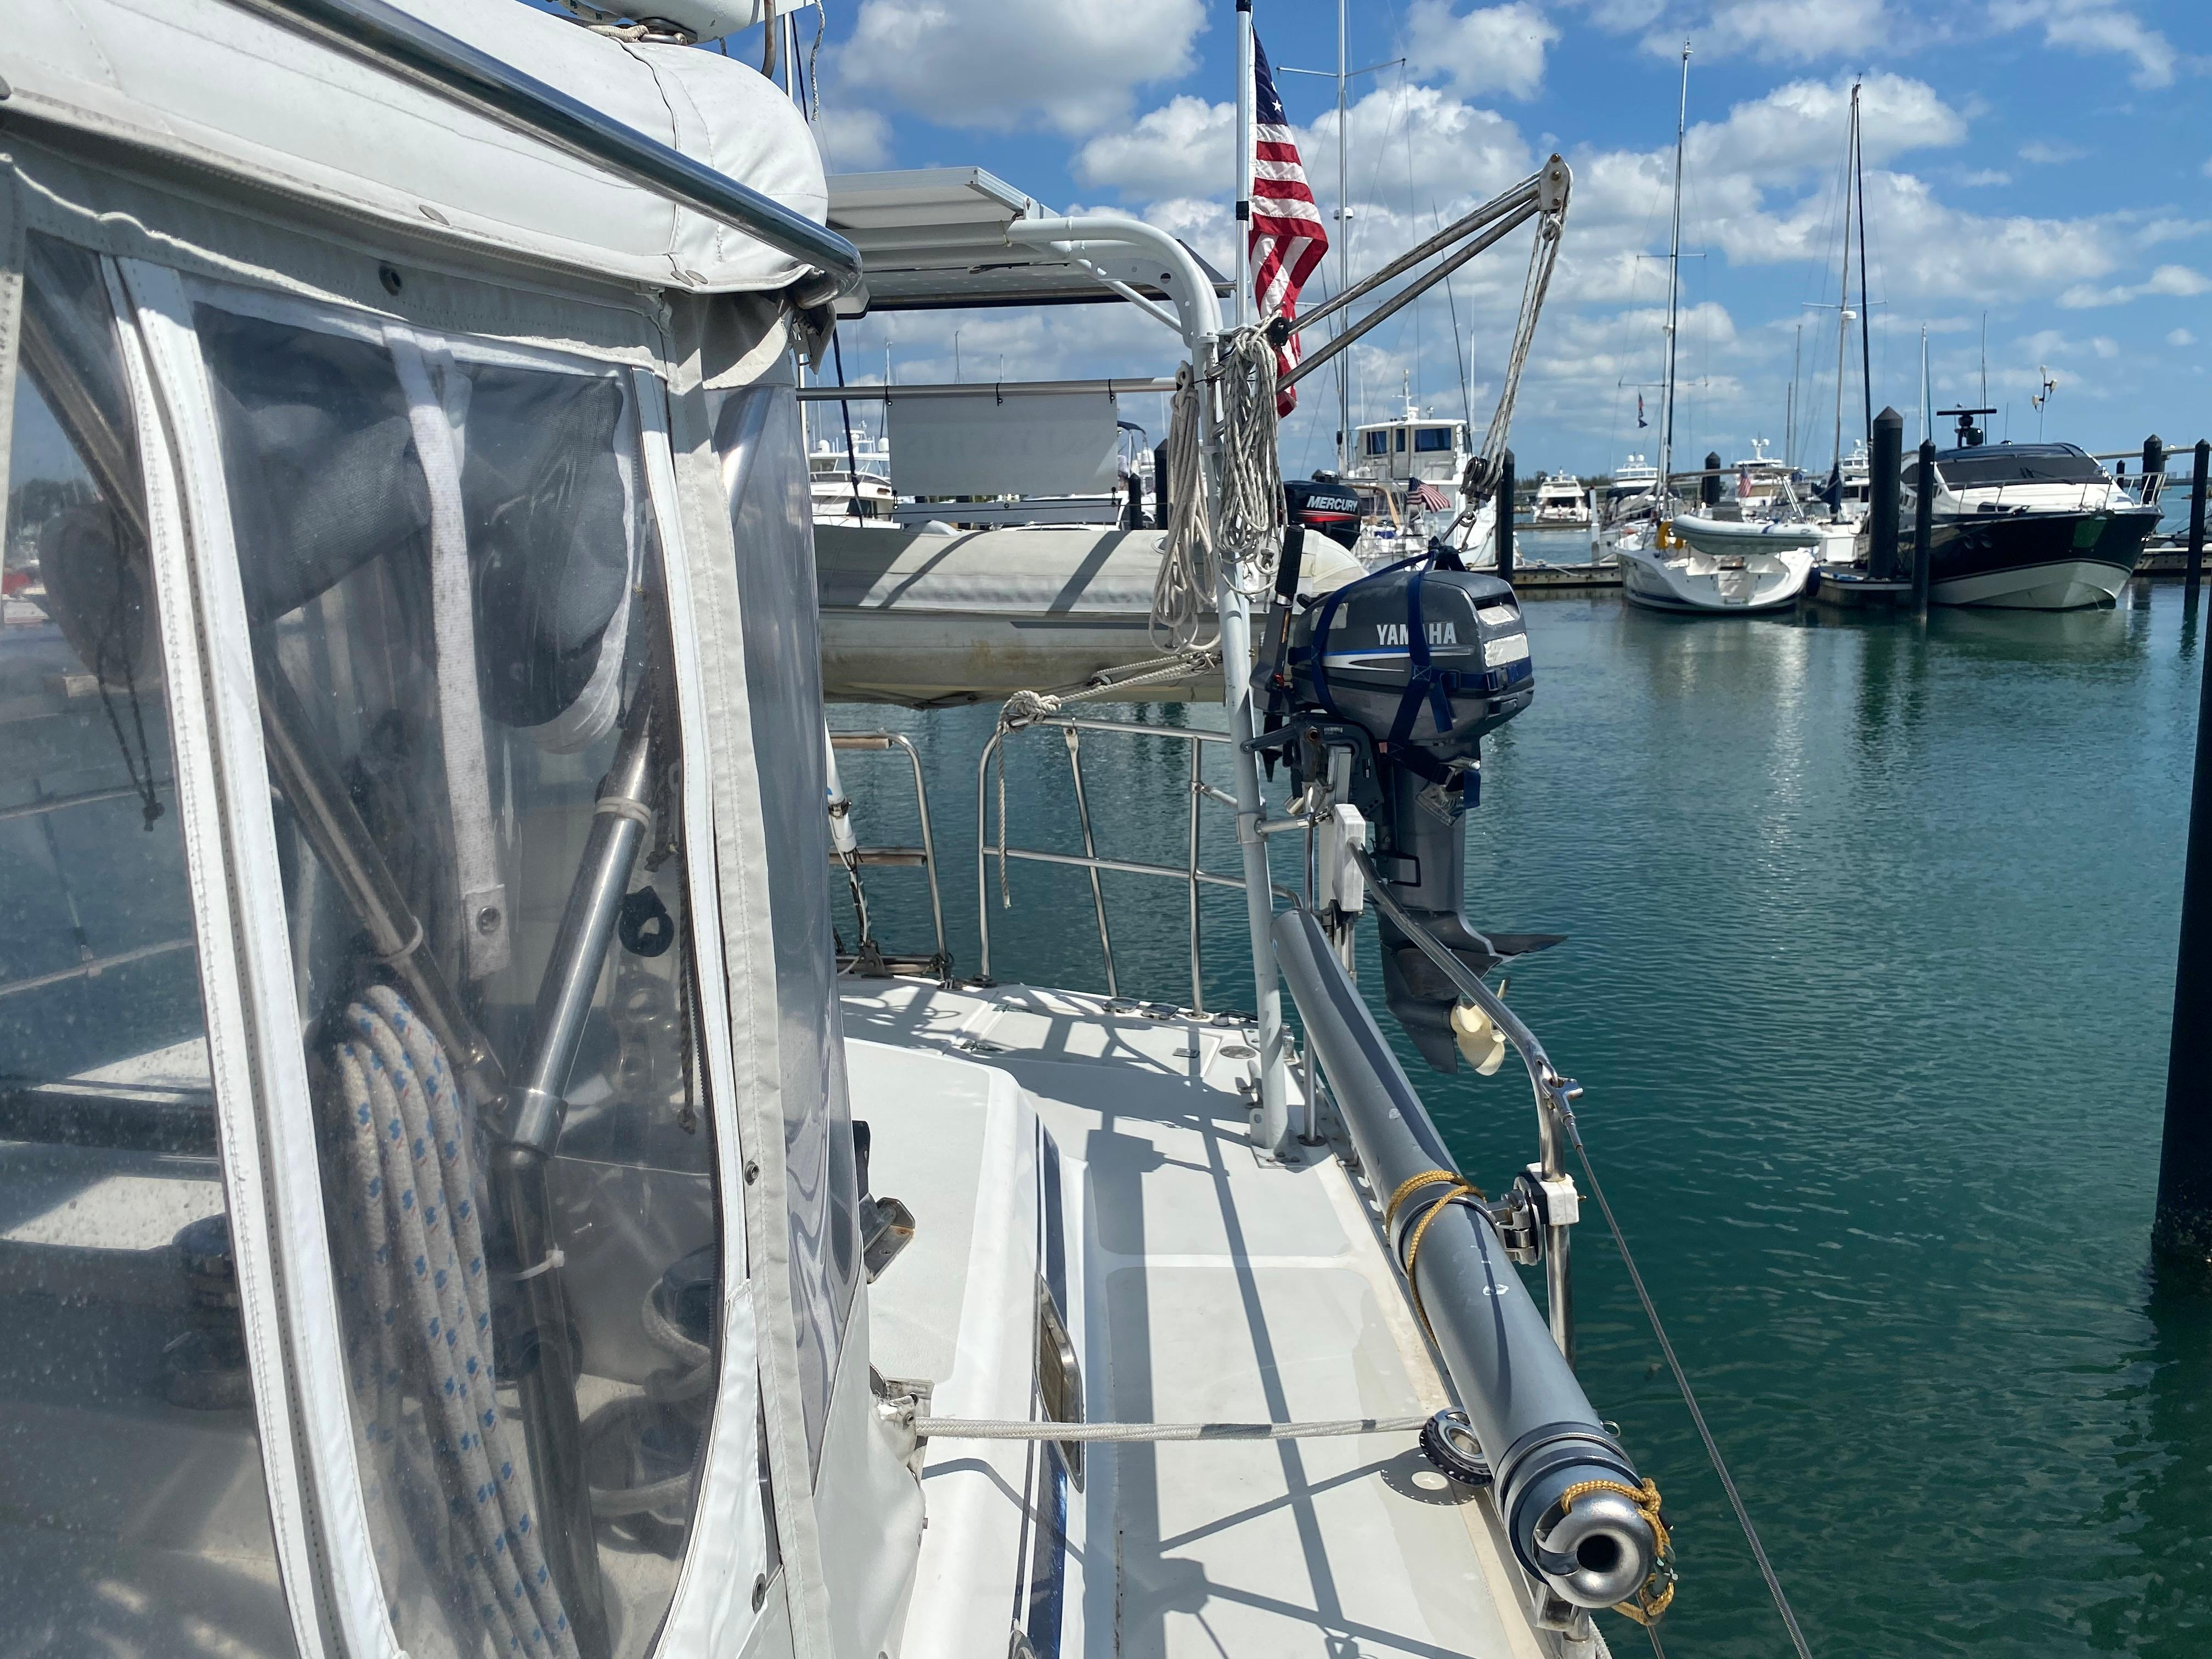 Removable Bowsprit Hanging on Stanchions